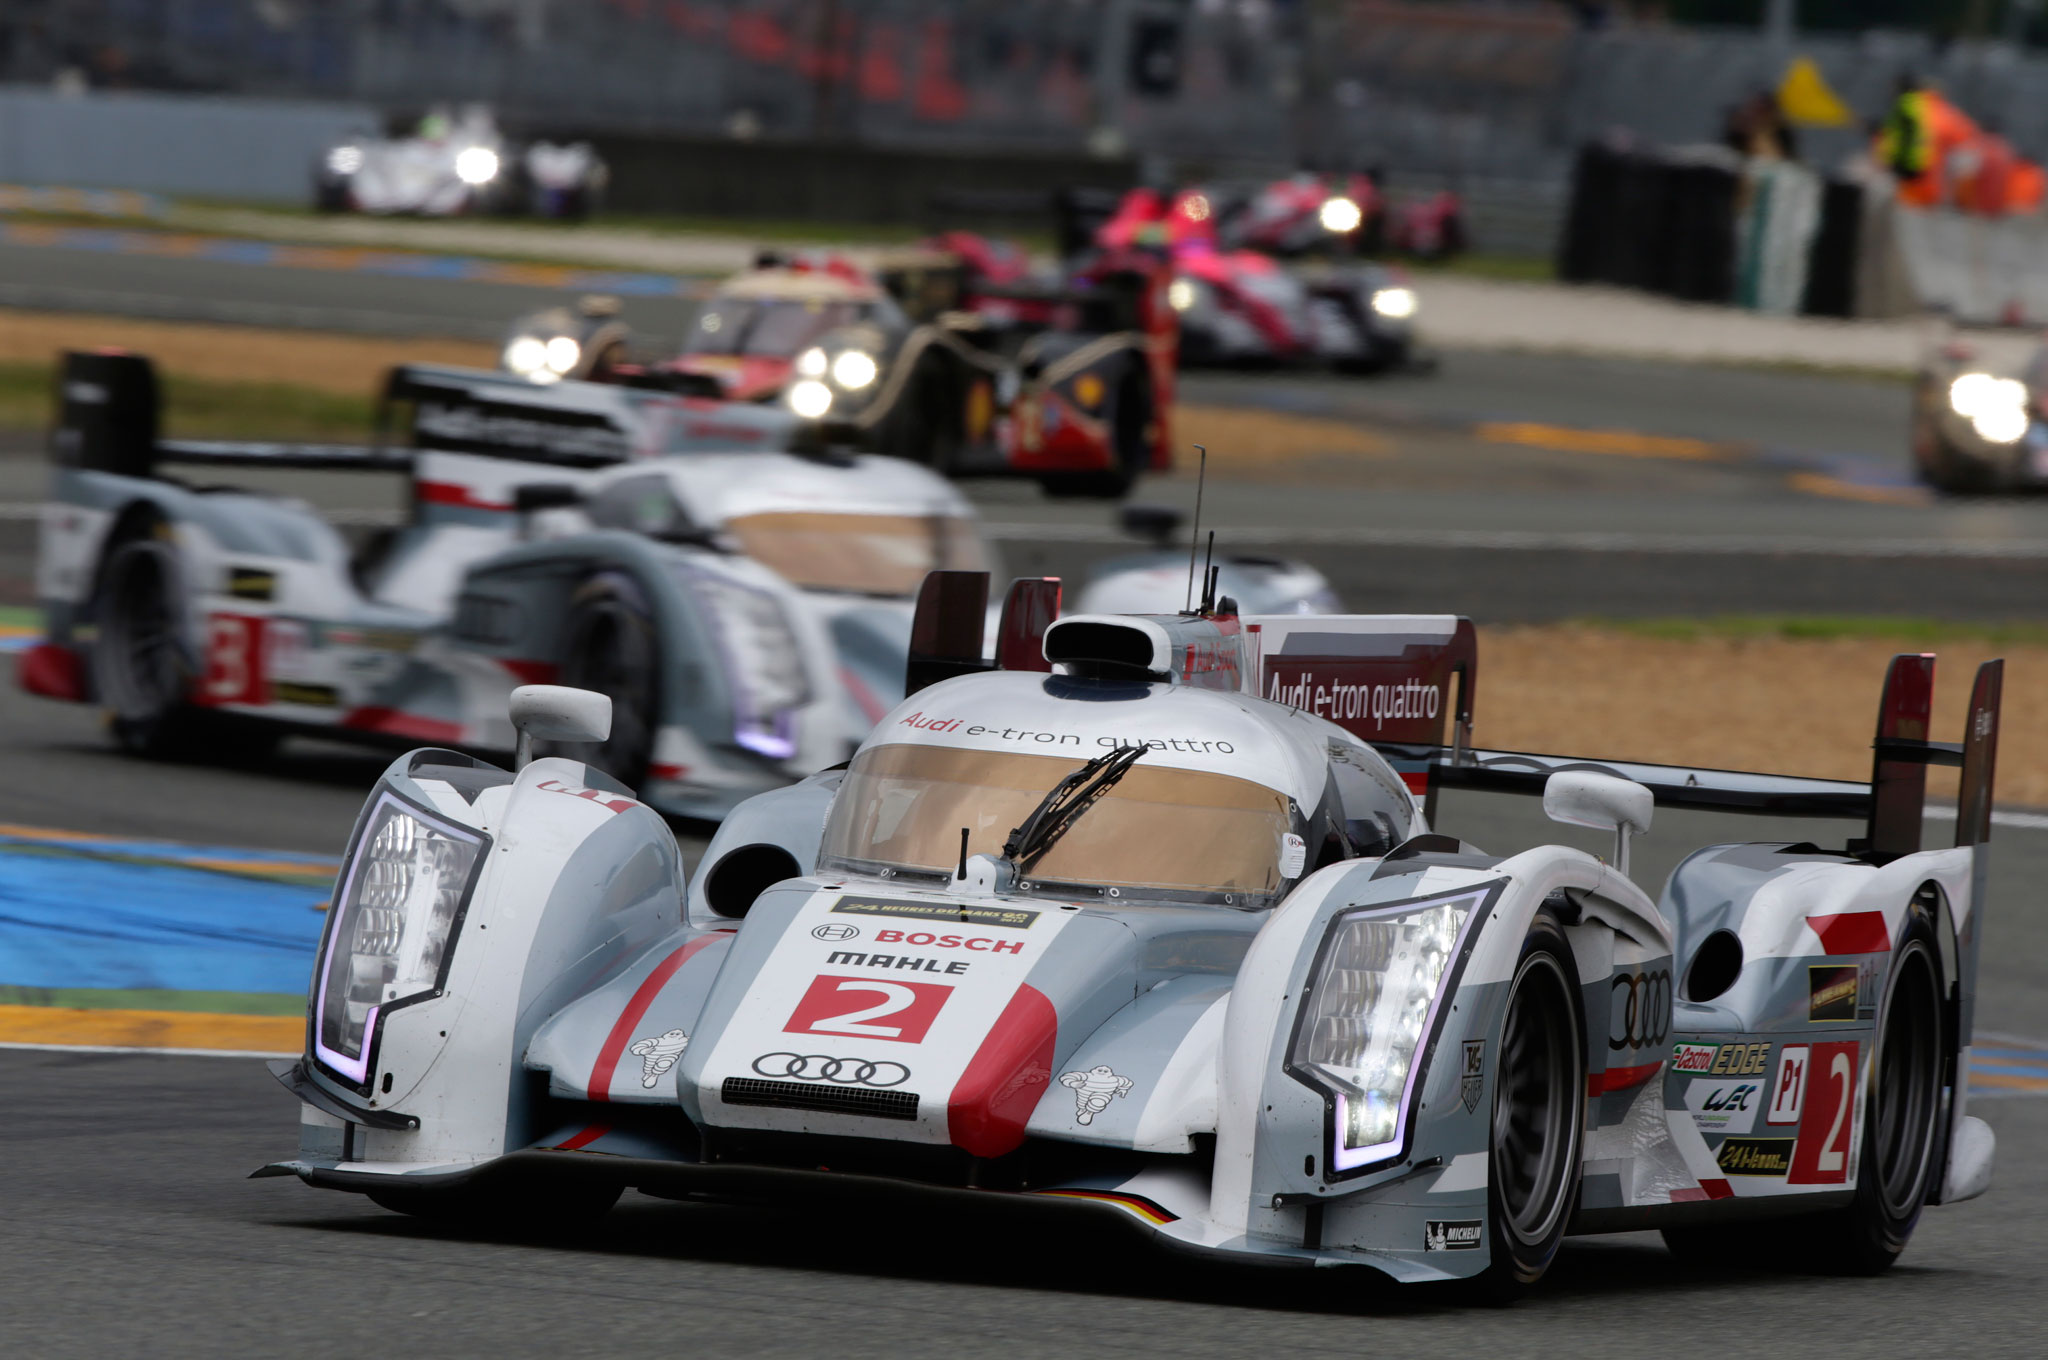 audi wins fourth consecutive le mans toyota takes second fourth. Black Bedroom Furniture Sets. Home Design Ideas